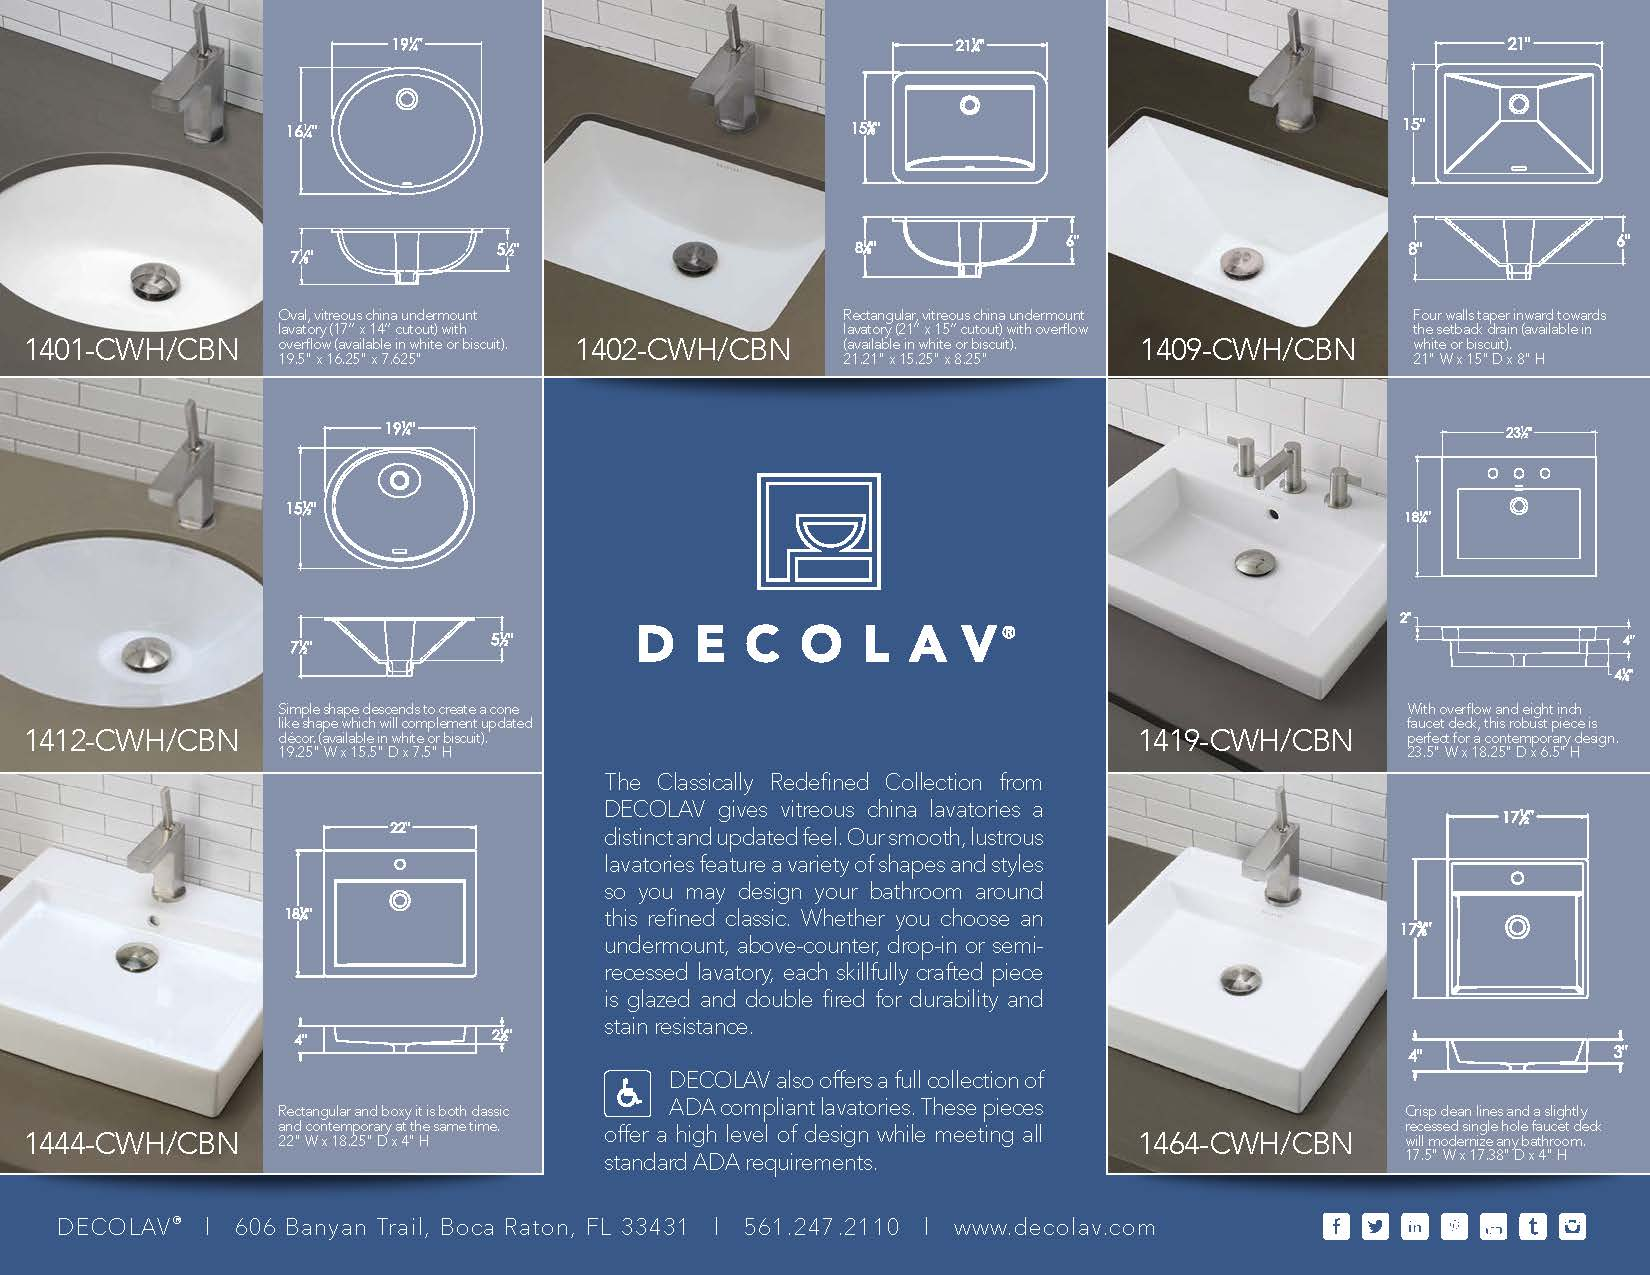 Ada Lavatory Knee Space decolav's ada compliant lavatories | decolav's stay in the know!